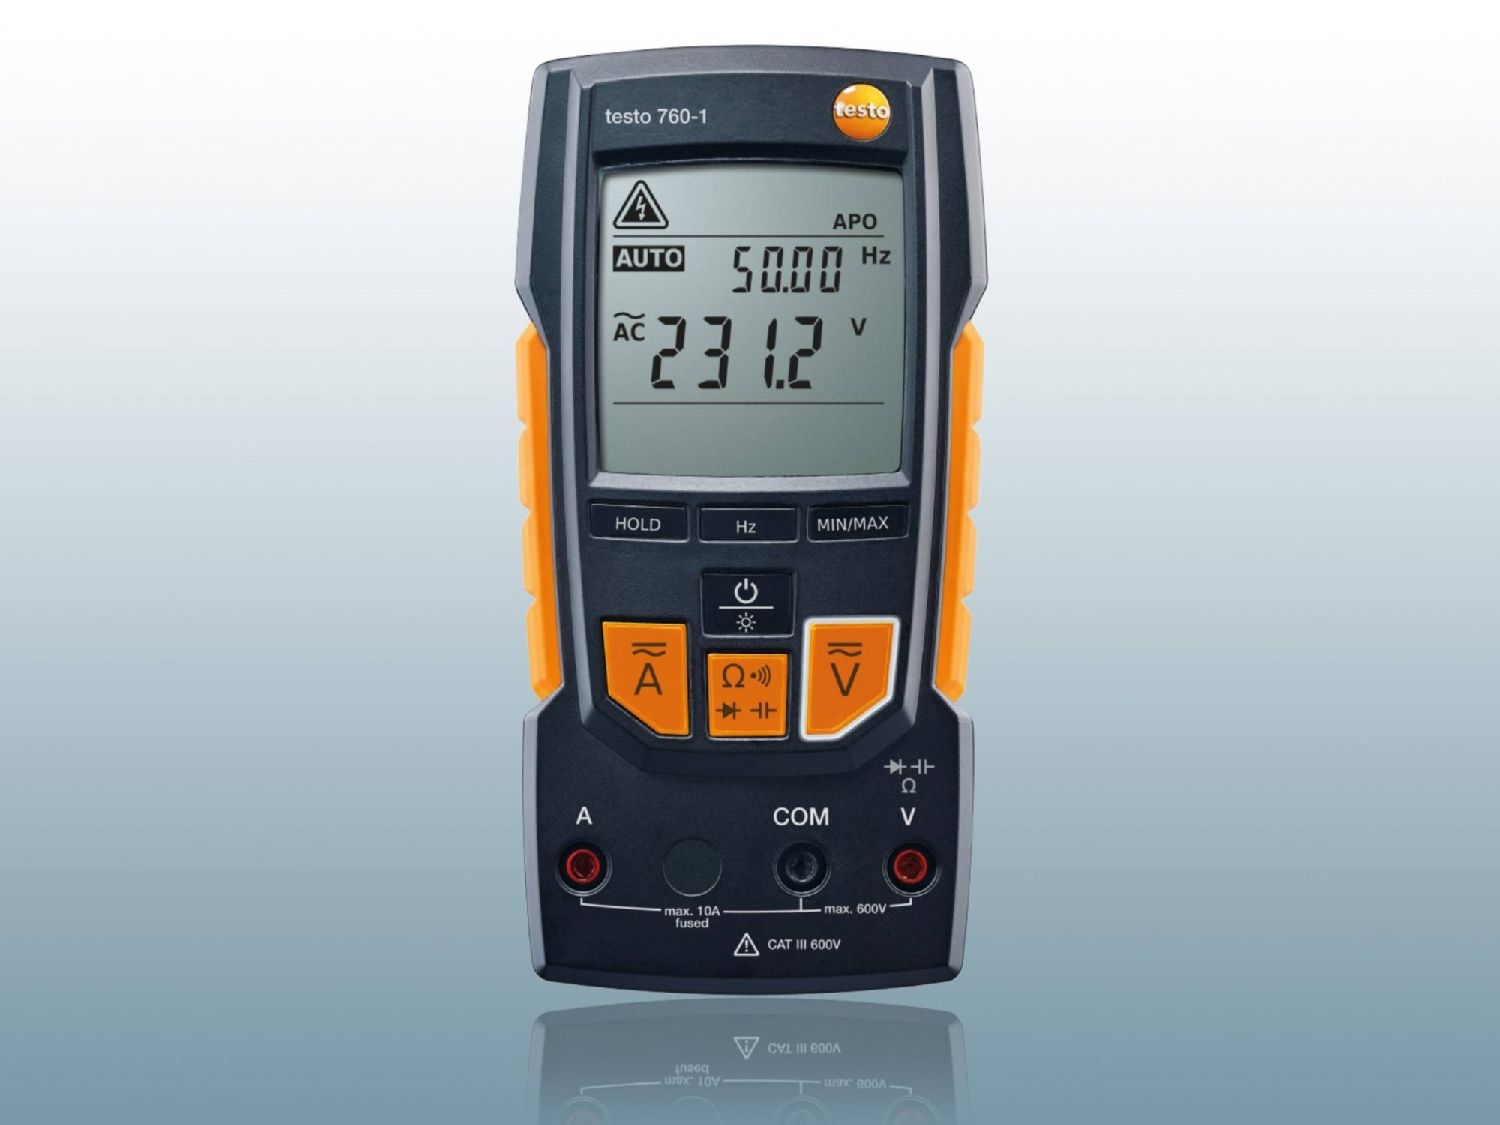 Digital-Multimeter testo 760-1